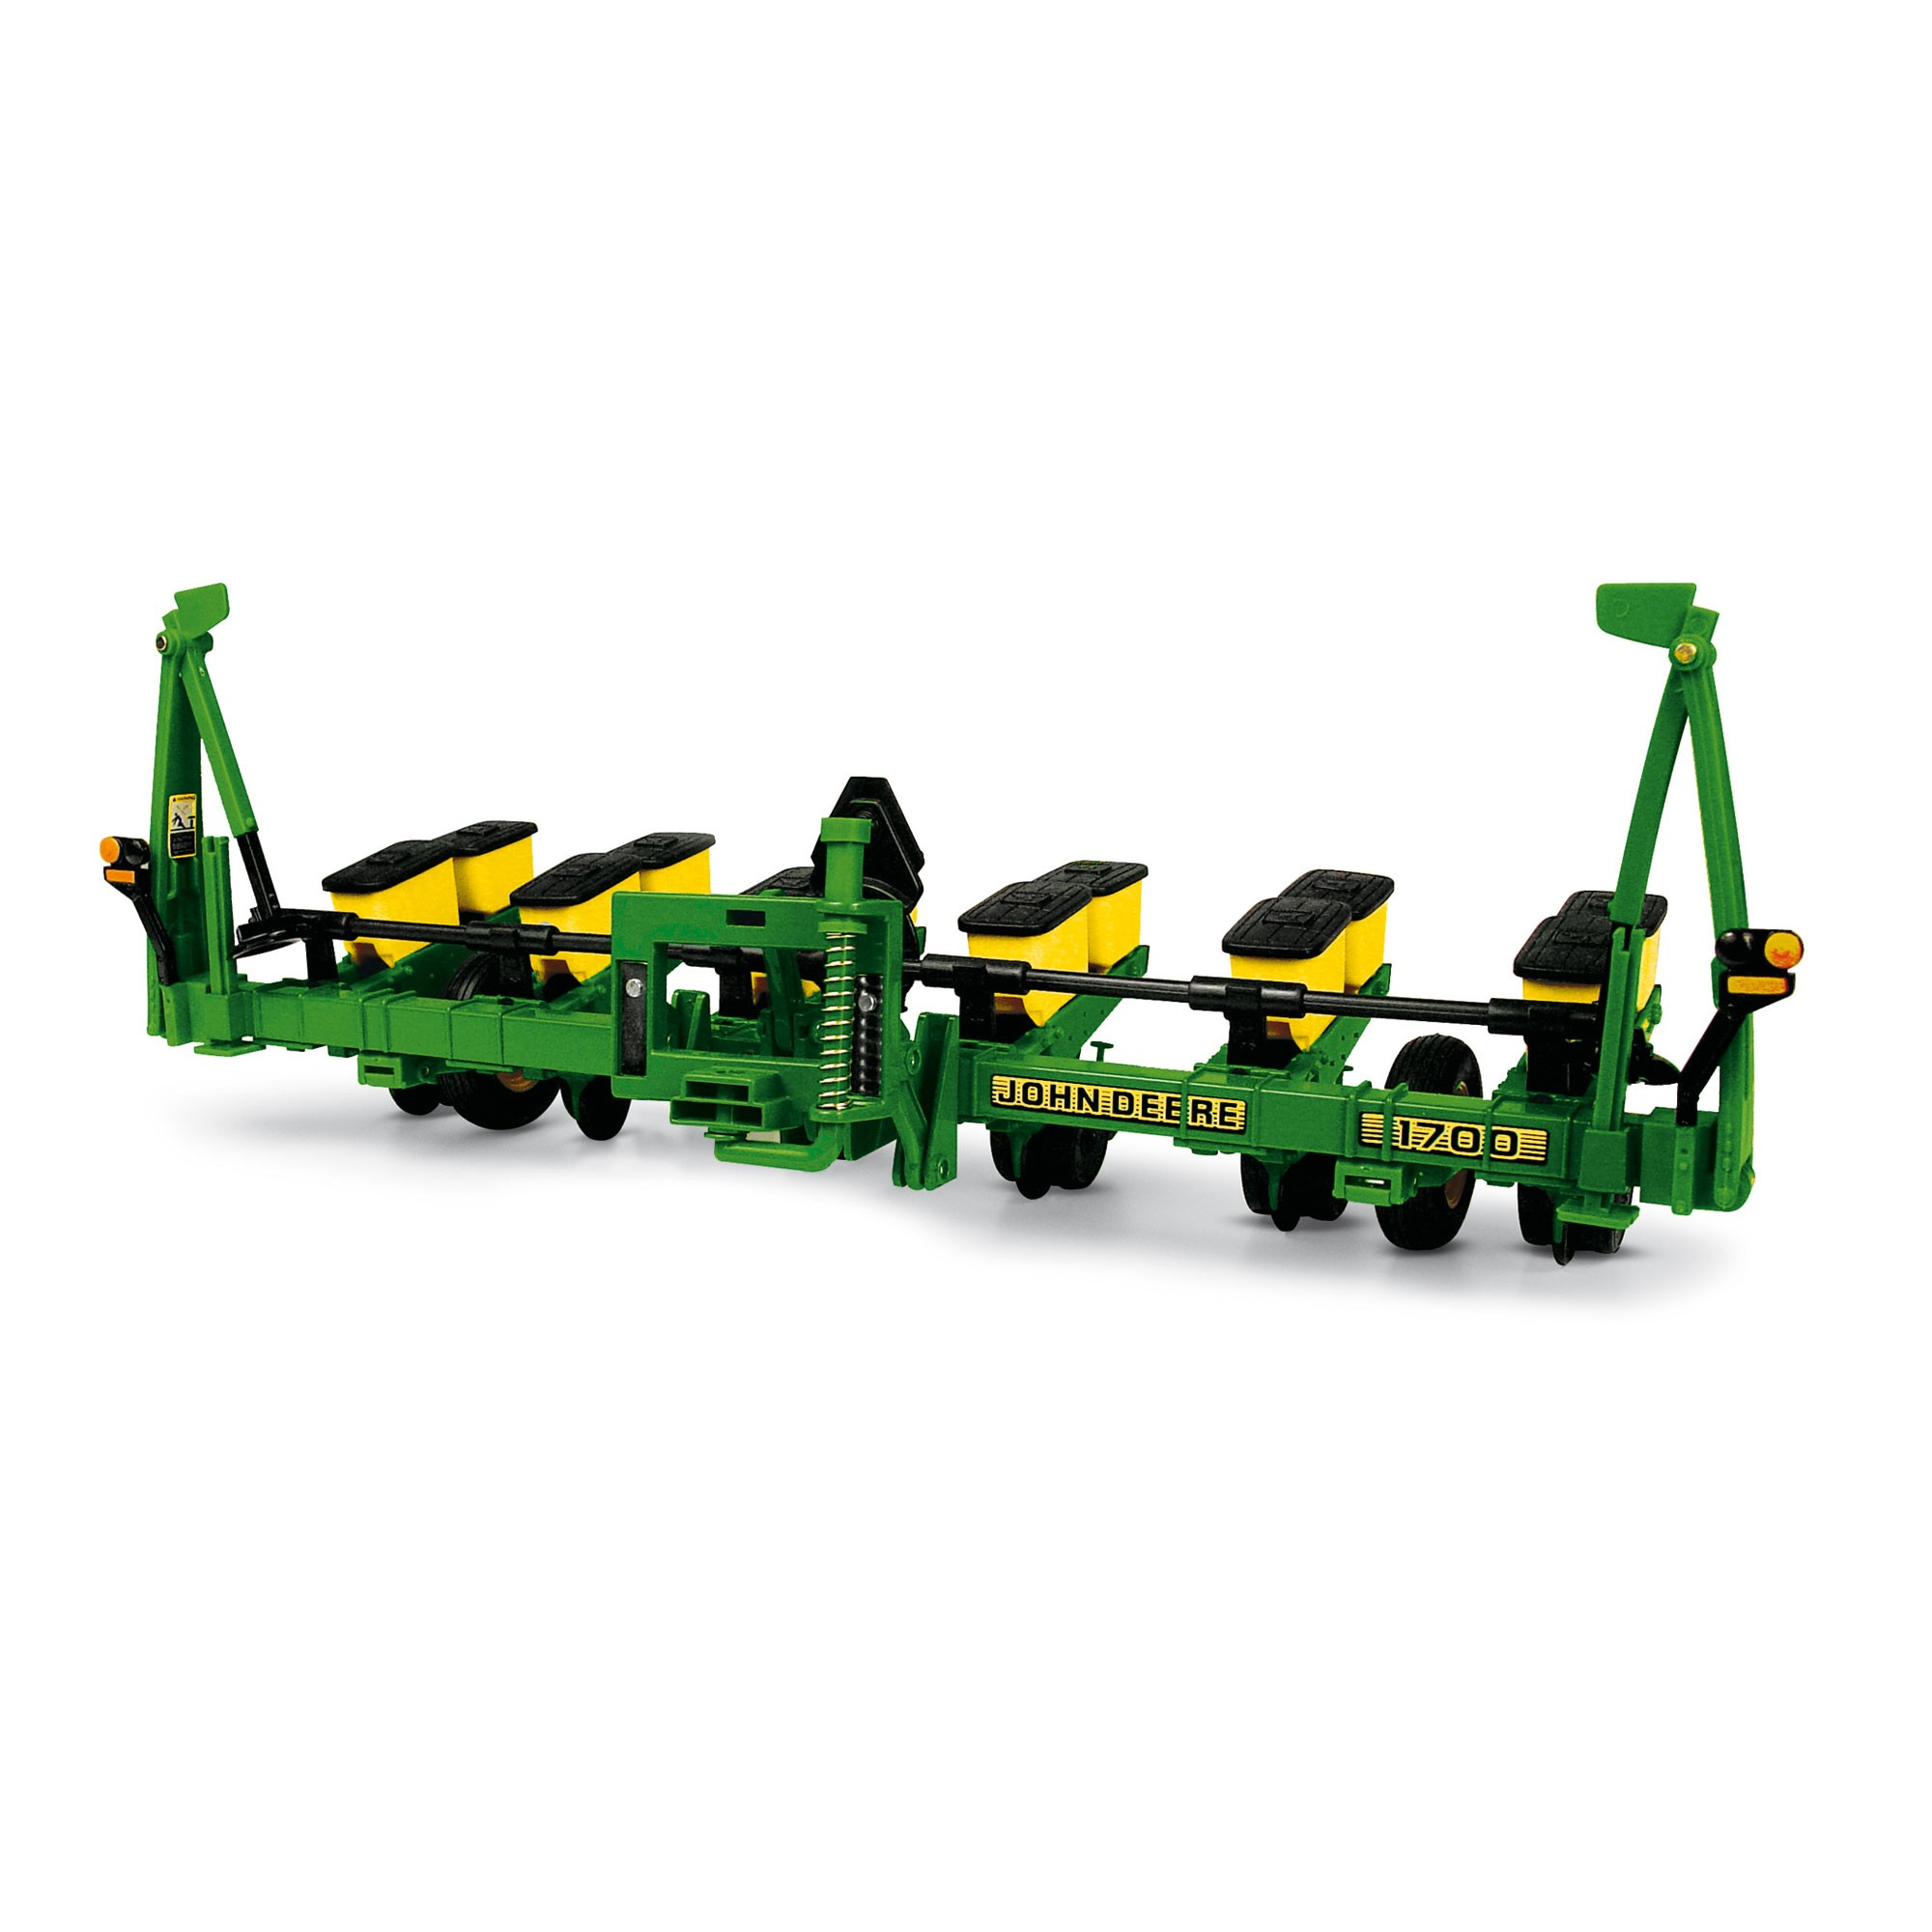 ... straight with this 1/16 scale John Deere 1700 Series 6-Row Planter